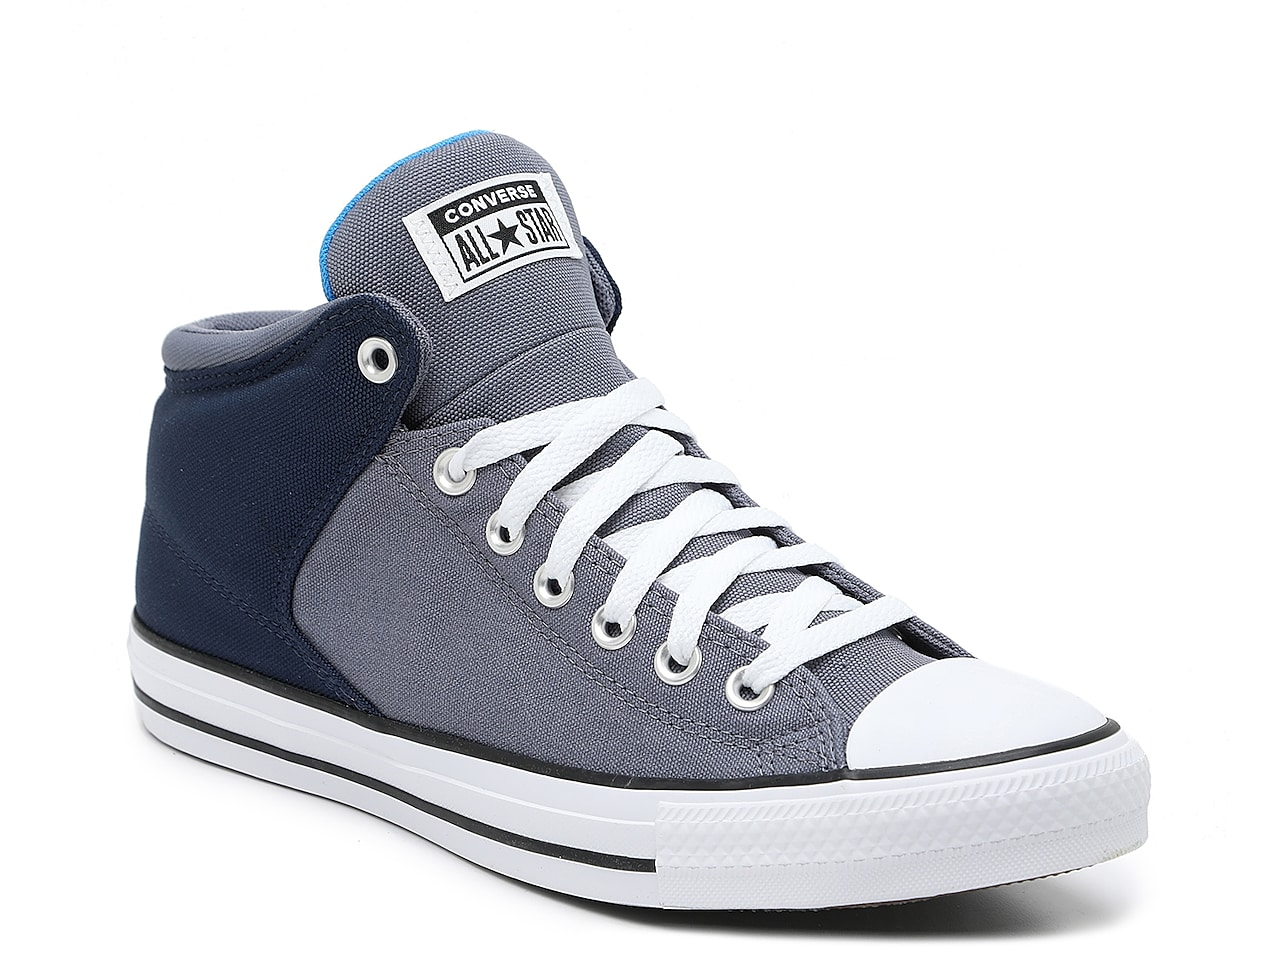 Chuck Taylor All Star Mid High-Top Sneaker - Men's